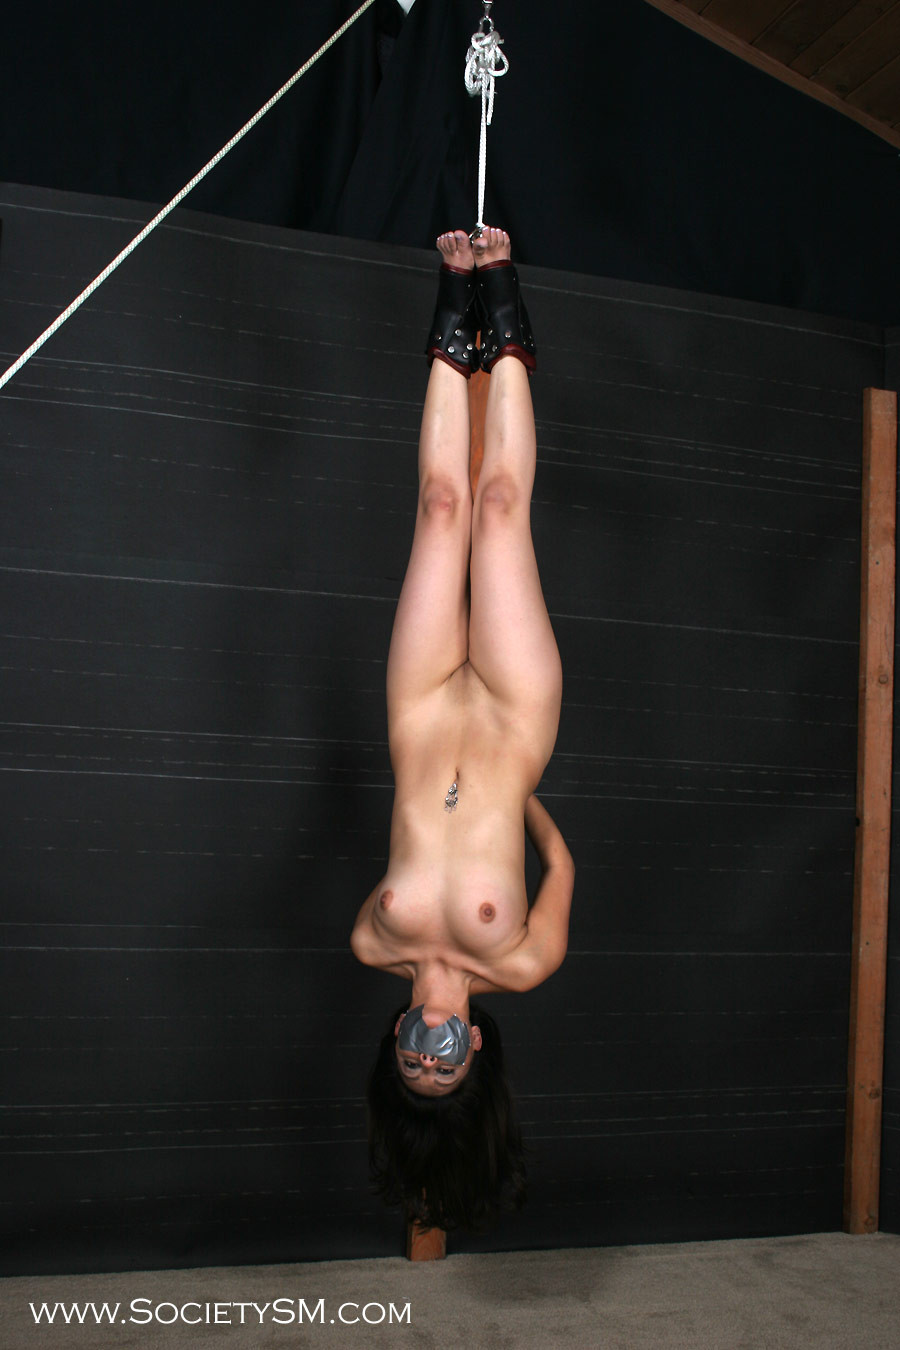 Naked super girl hung upside down 6